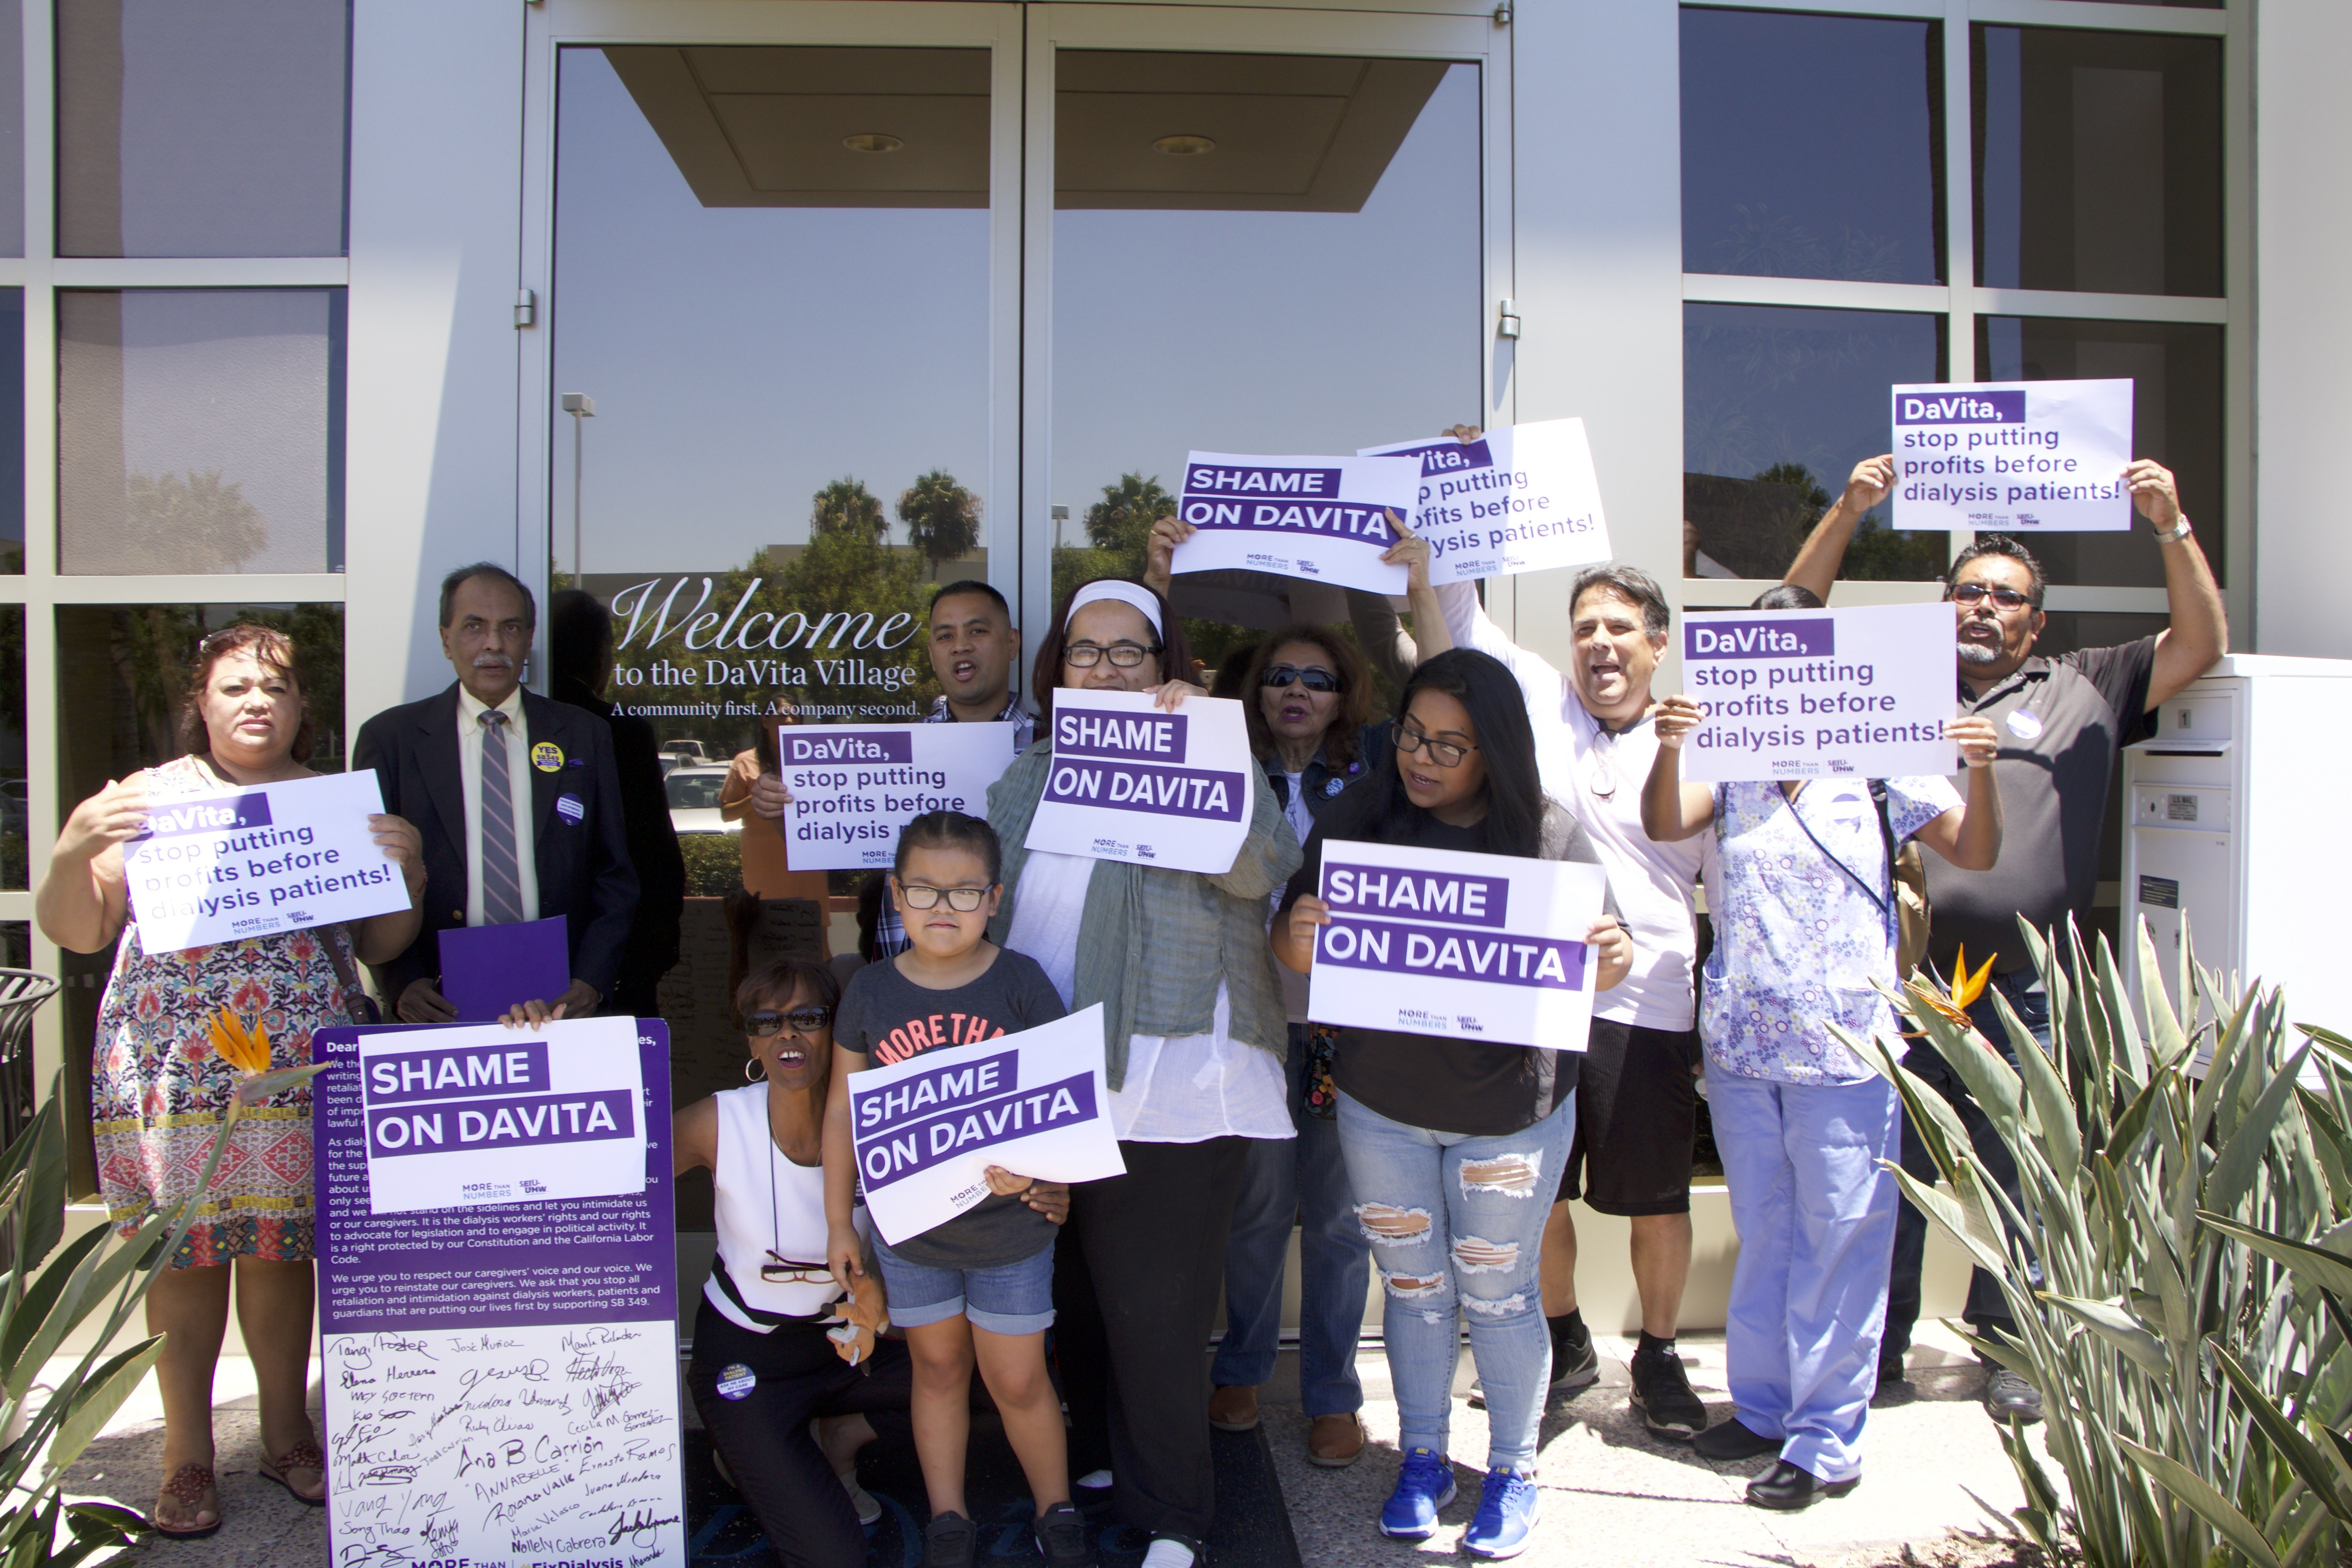 Dialysis Patients Rally at DaVita's Irvine Office to